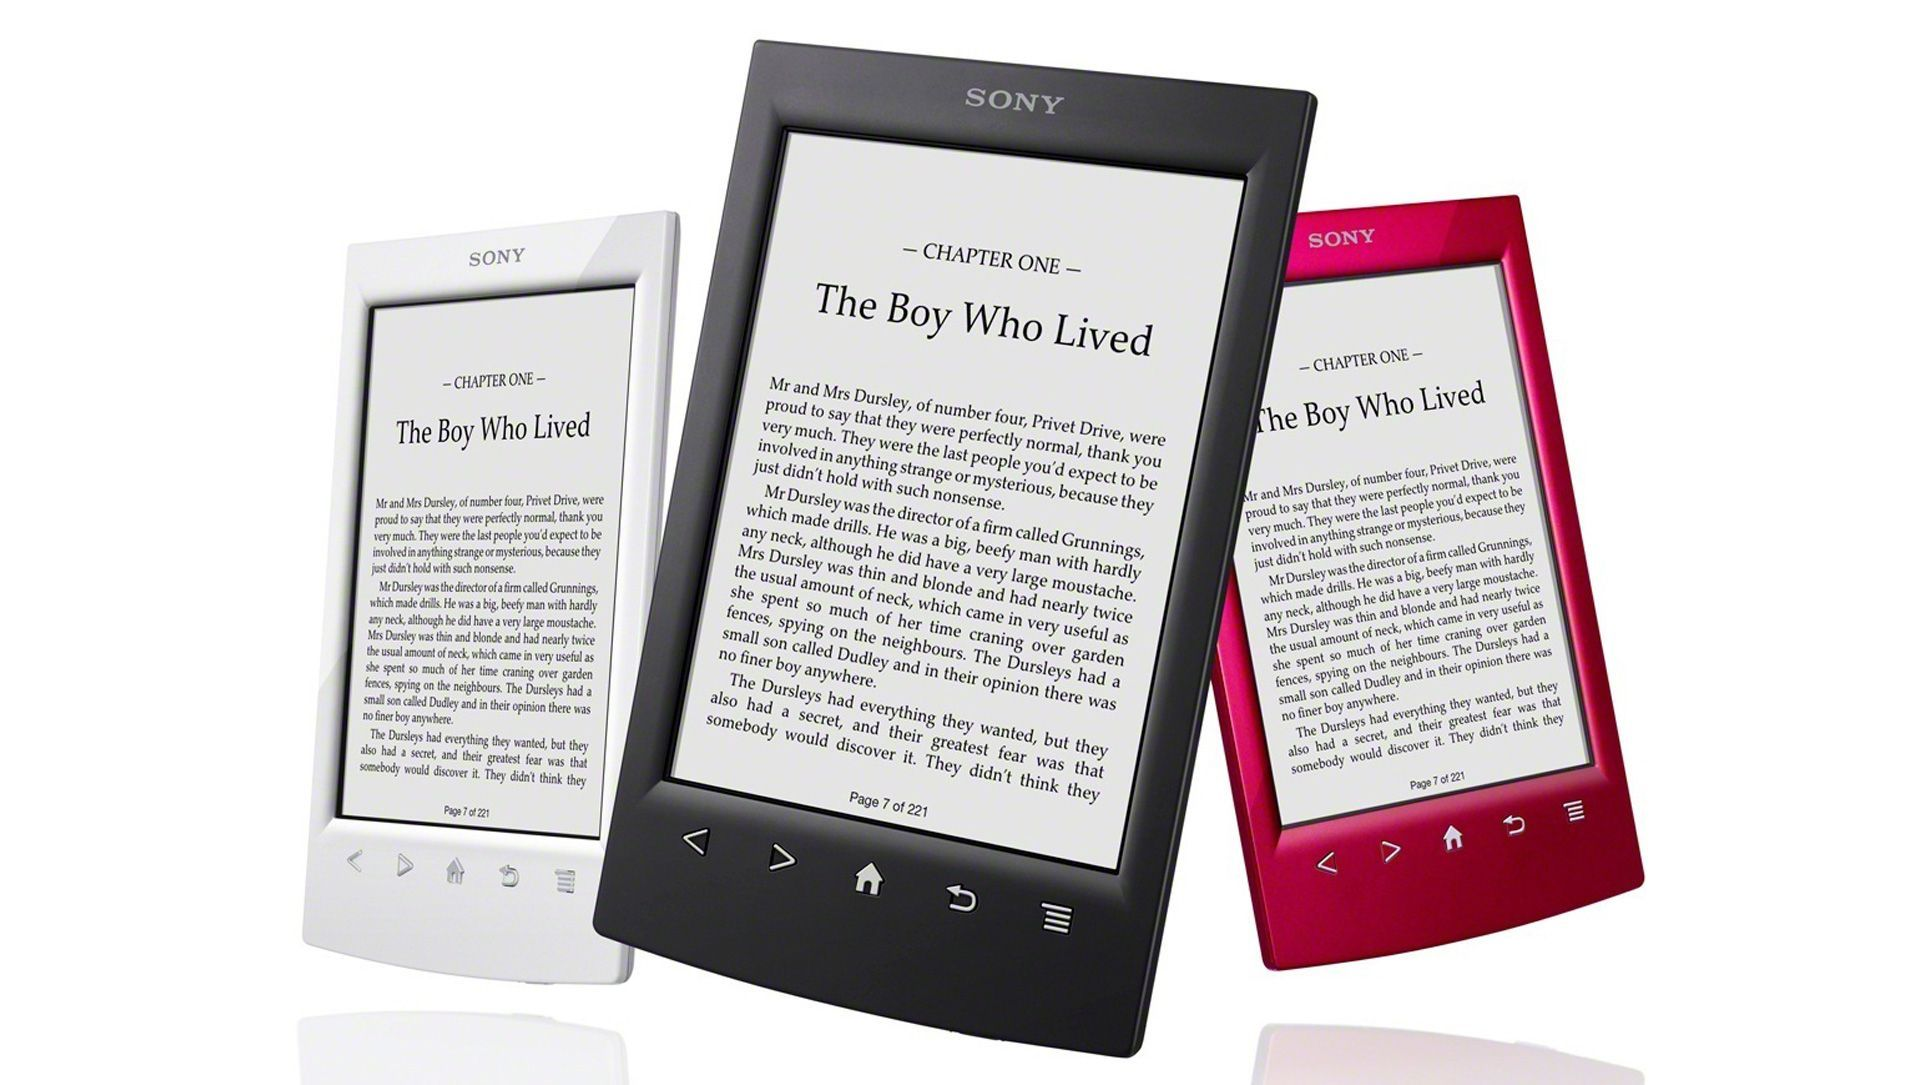 Donde Comprar Libro Electronico Kindle Libros Electronicos Libro Electronico Ebook Kindle Share